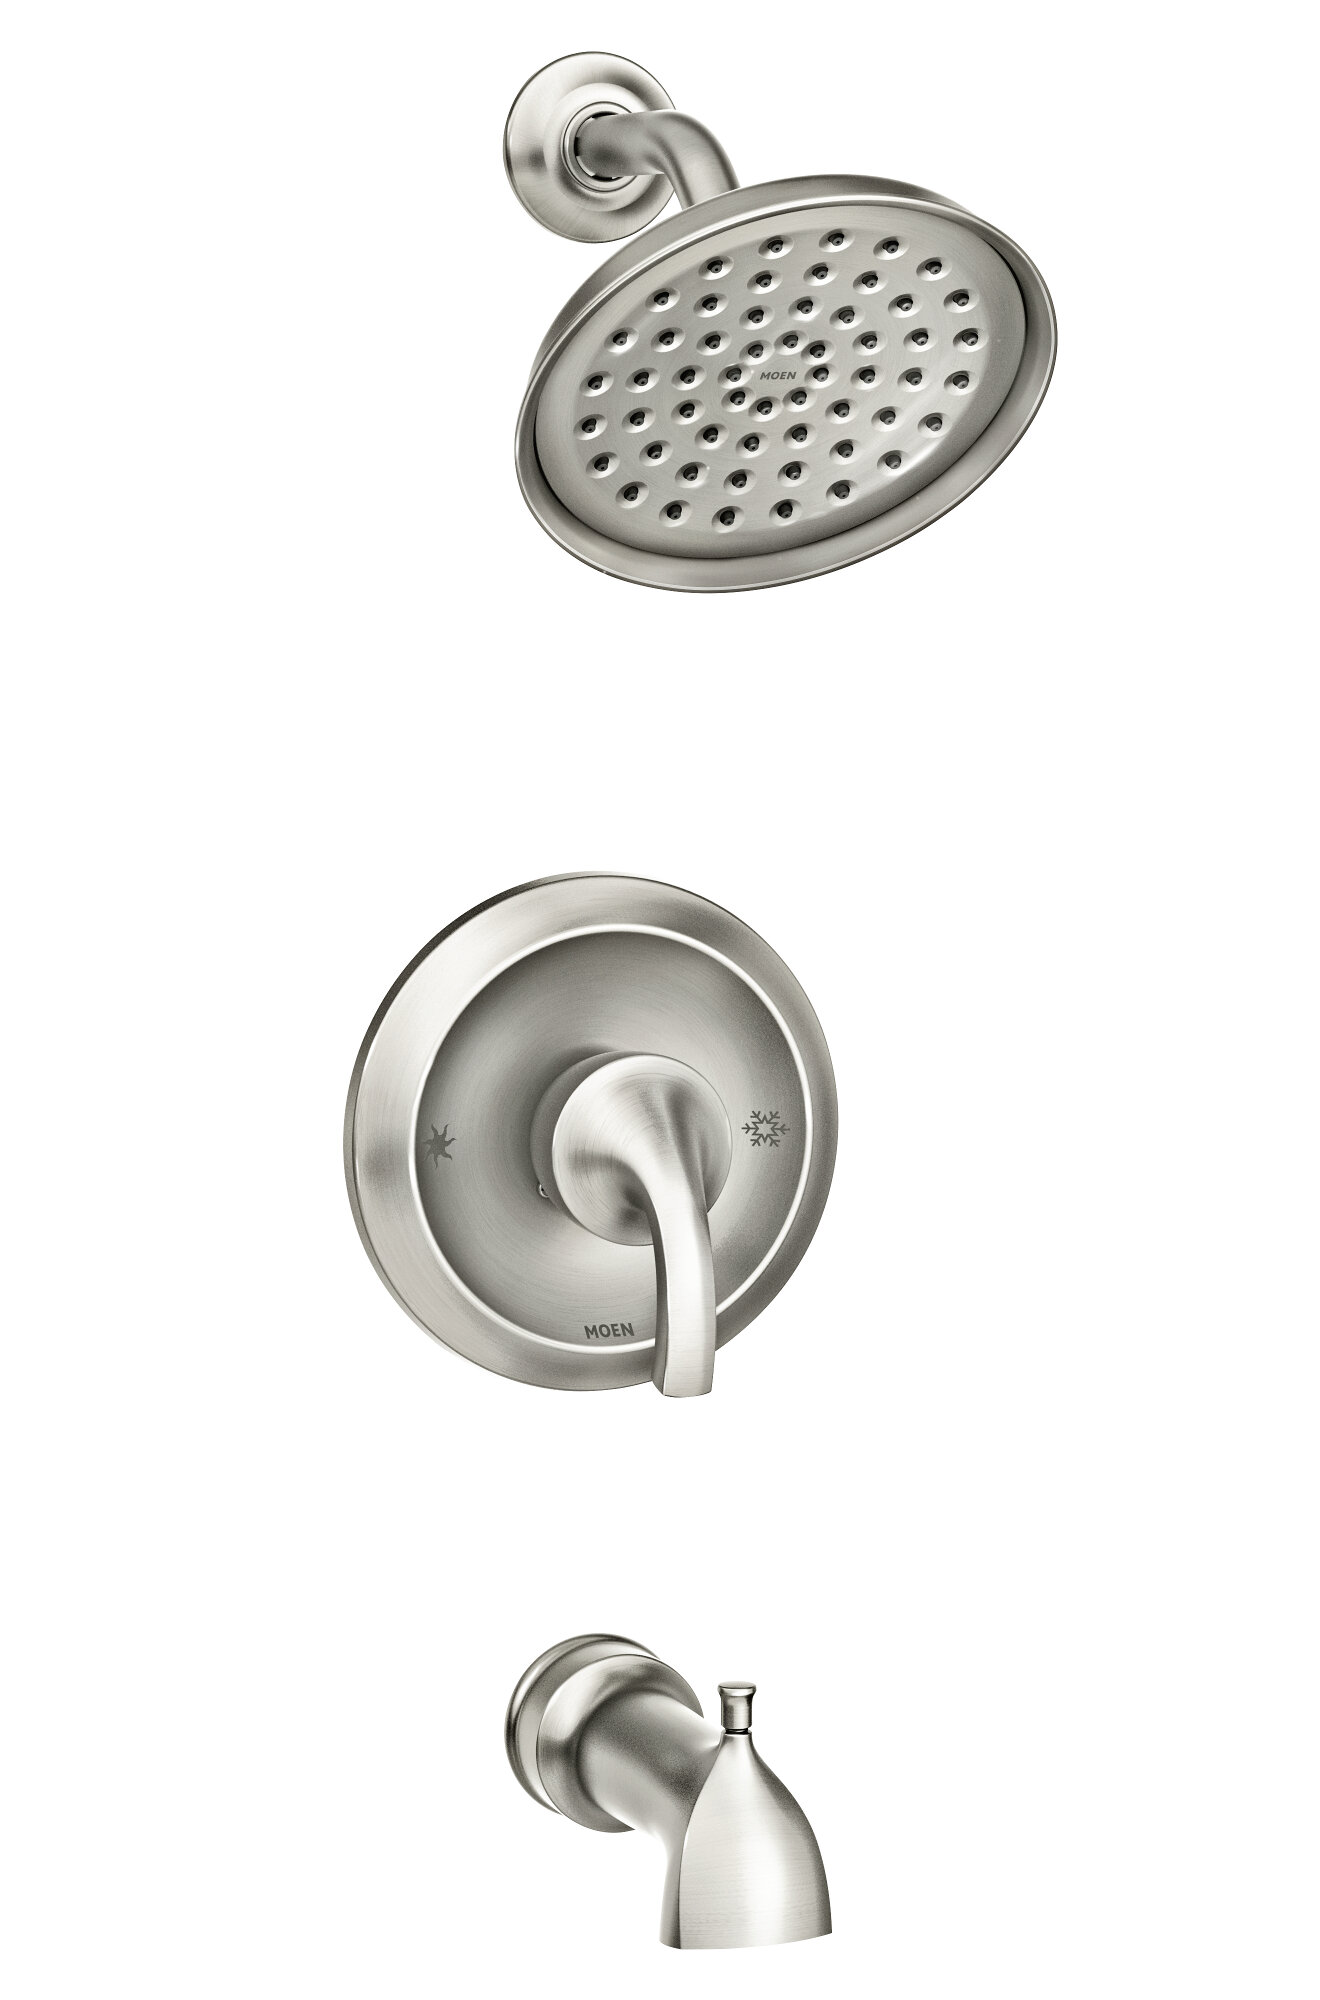 Hamden Posi Temp Dual Function Tub And Shower Faucet With Valve Trim And Diverter